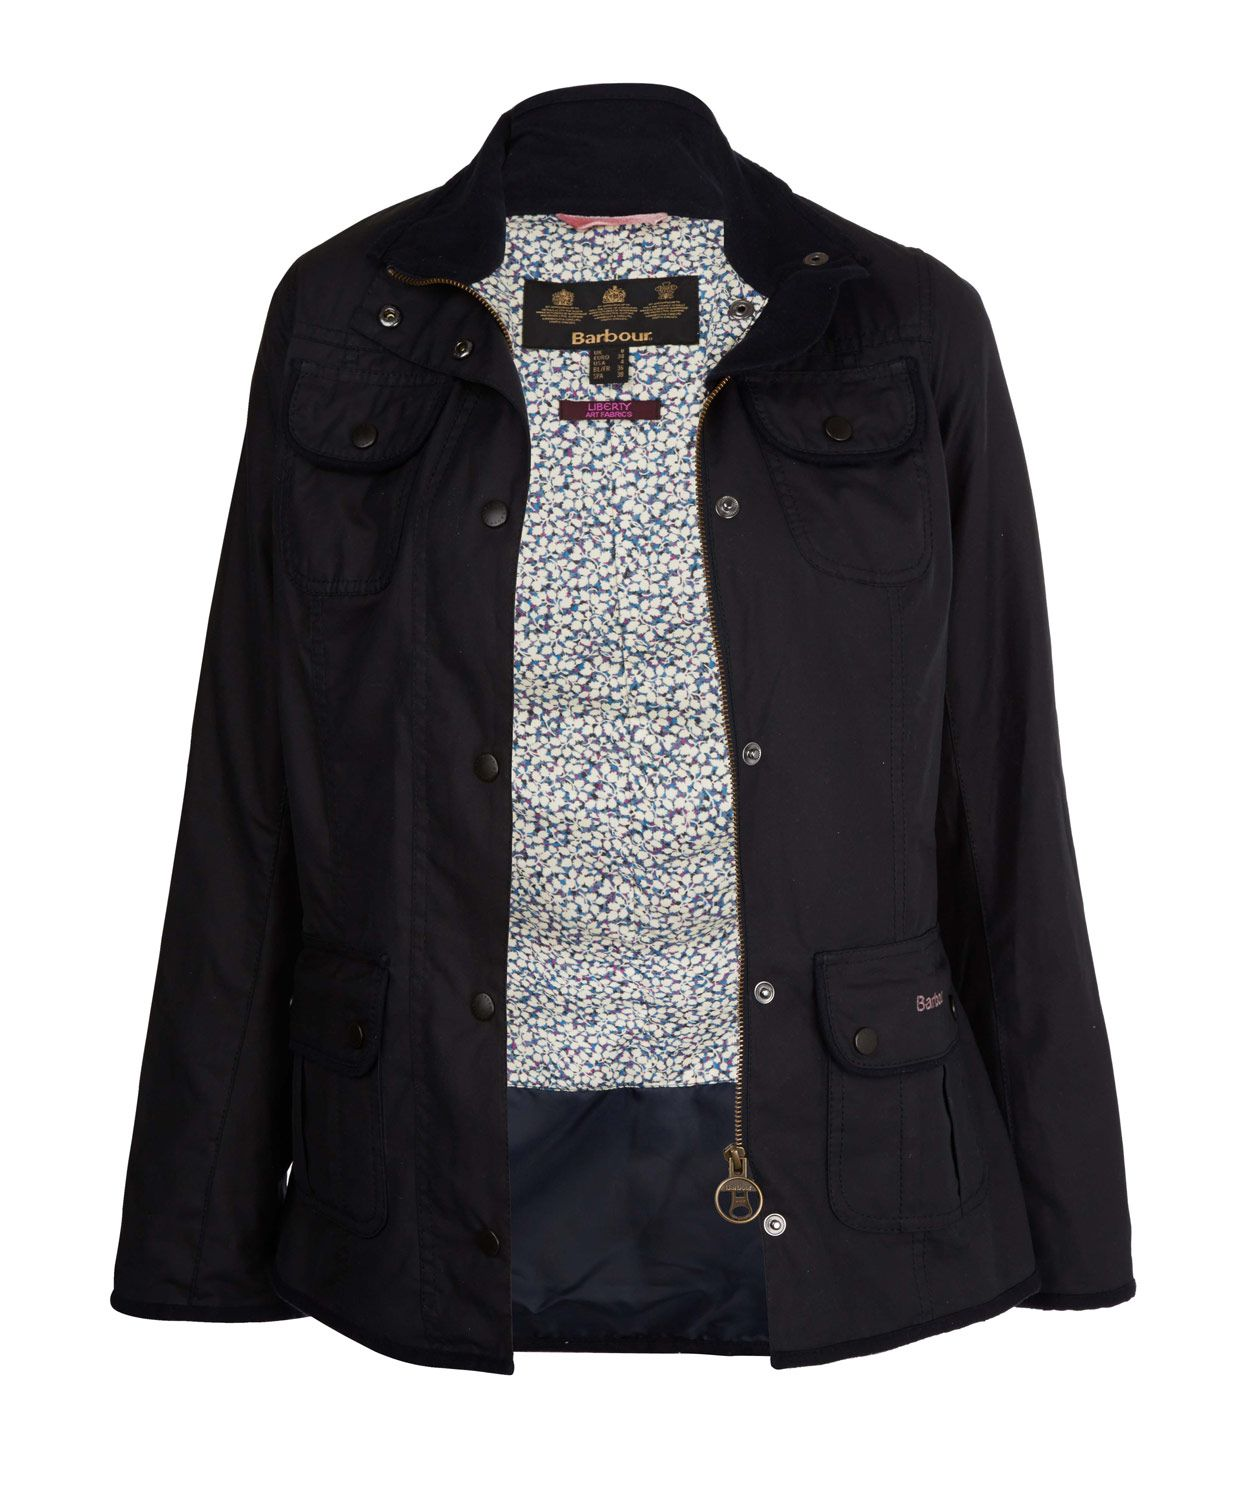 barbour liberty jacket